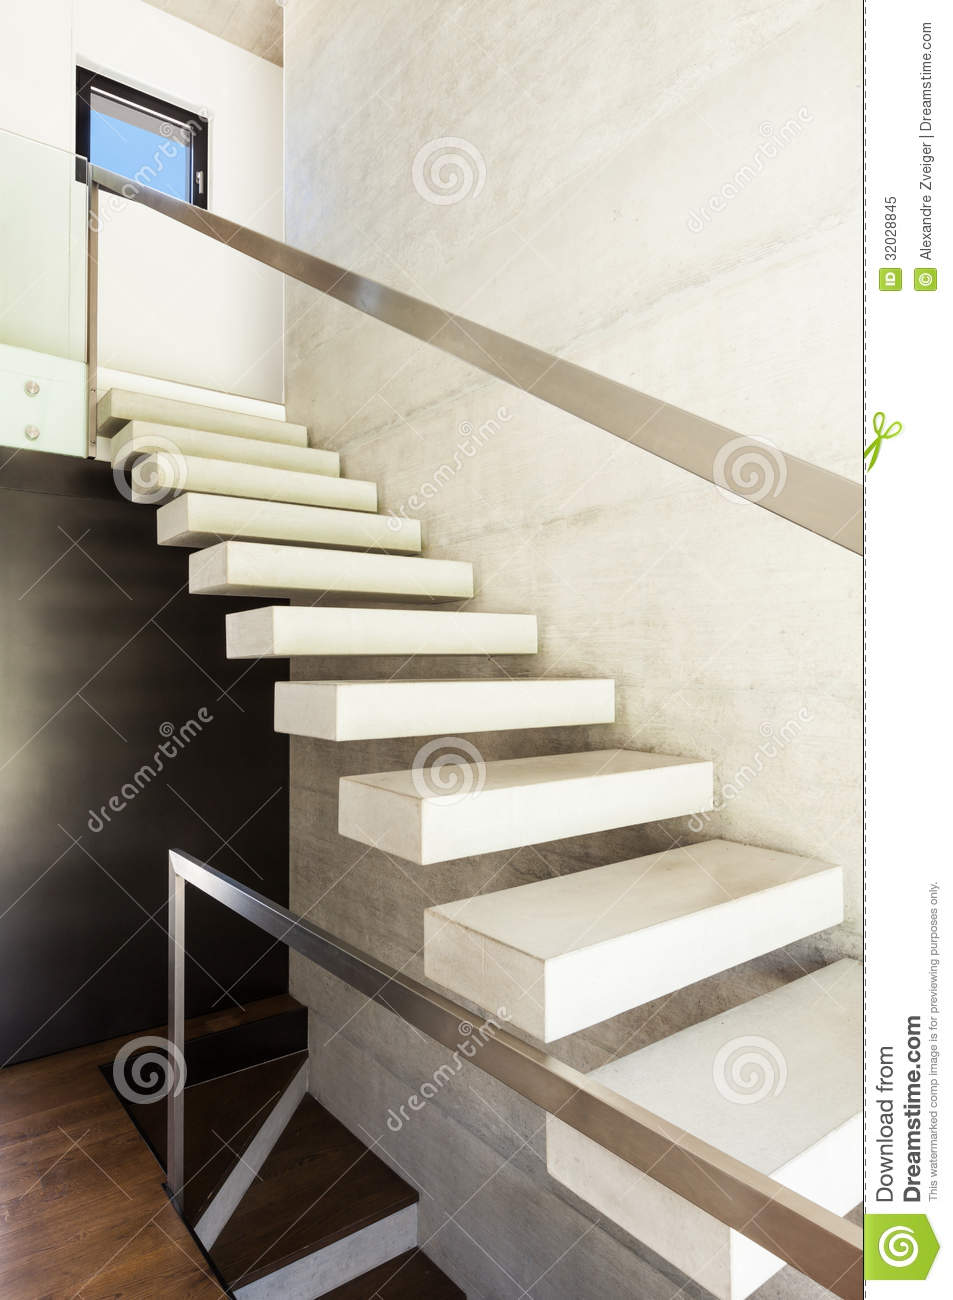 Modern villa interior stairs stock image image 32028845 for Escalier interieur moderne